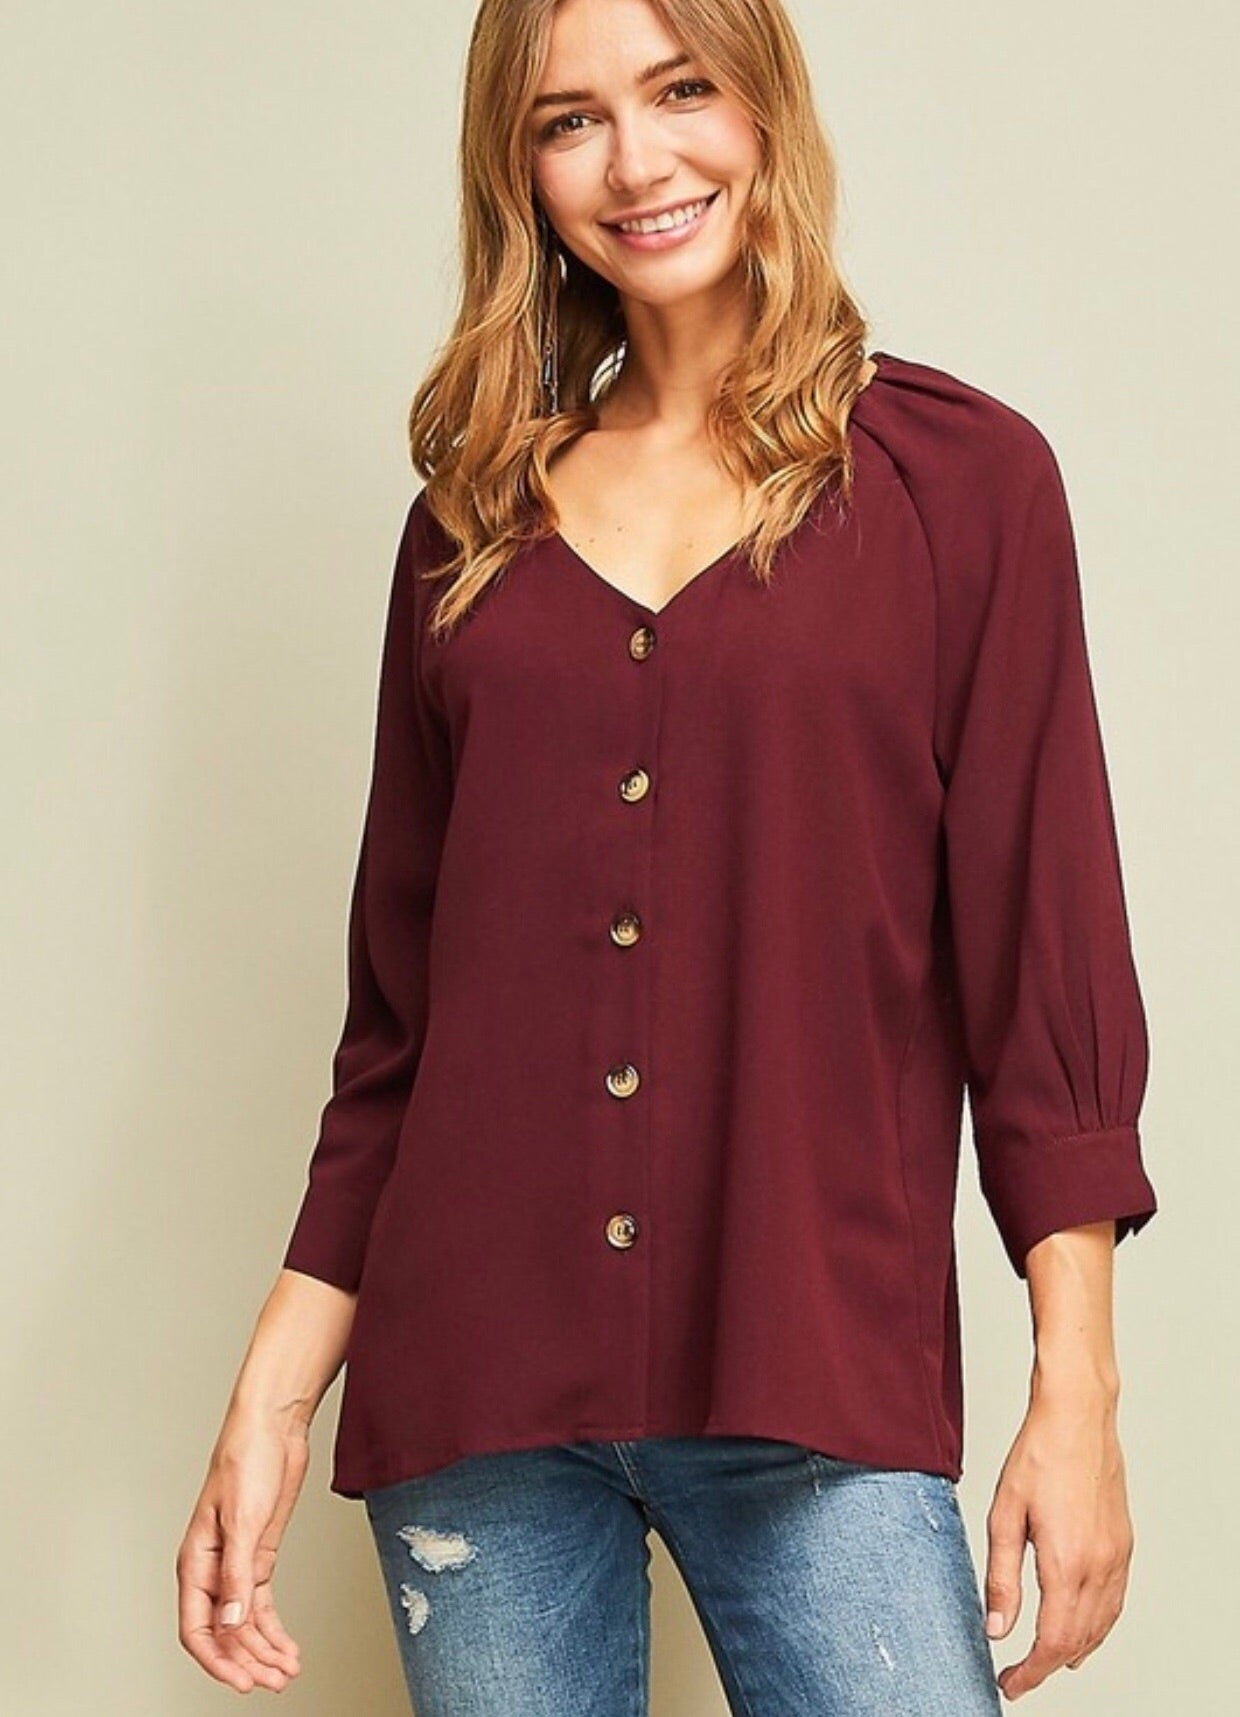 Burgundy Button Up Blouse